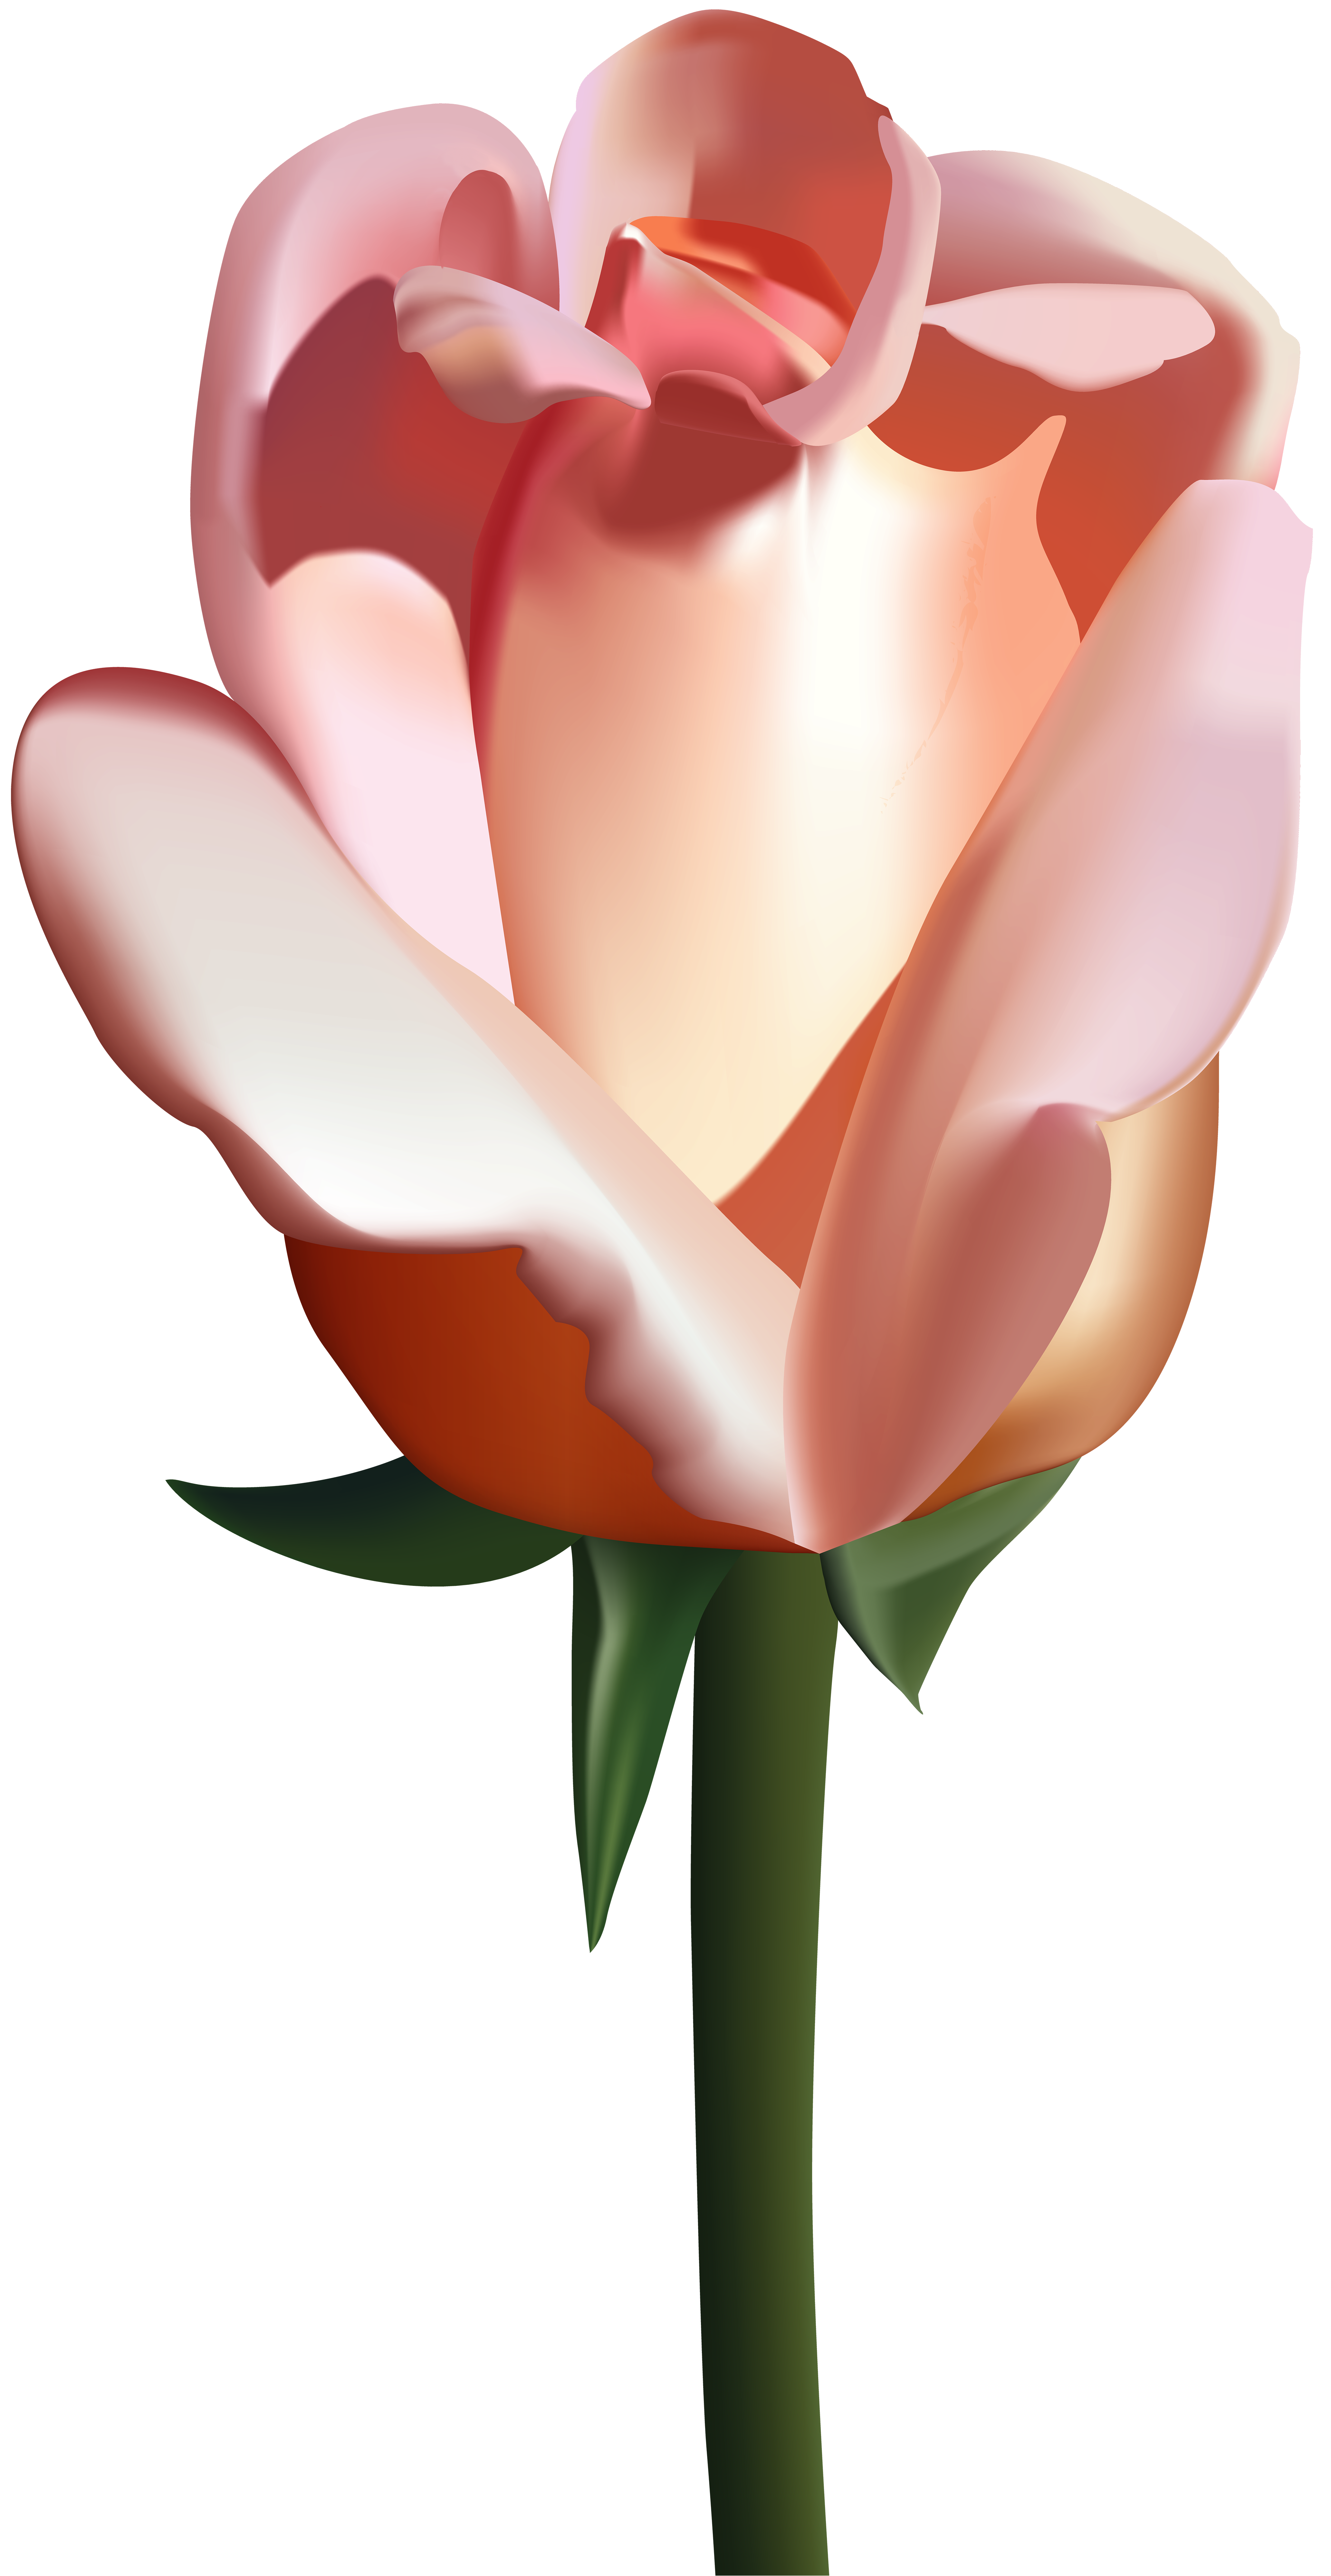 Peach flower clipart png black and white stock Peach Rose PNG Clip Art Image | Gallery Yopriceville - High-Quality ... png black and white stock